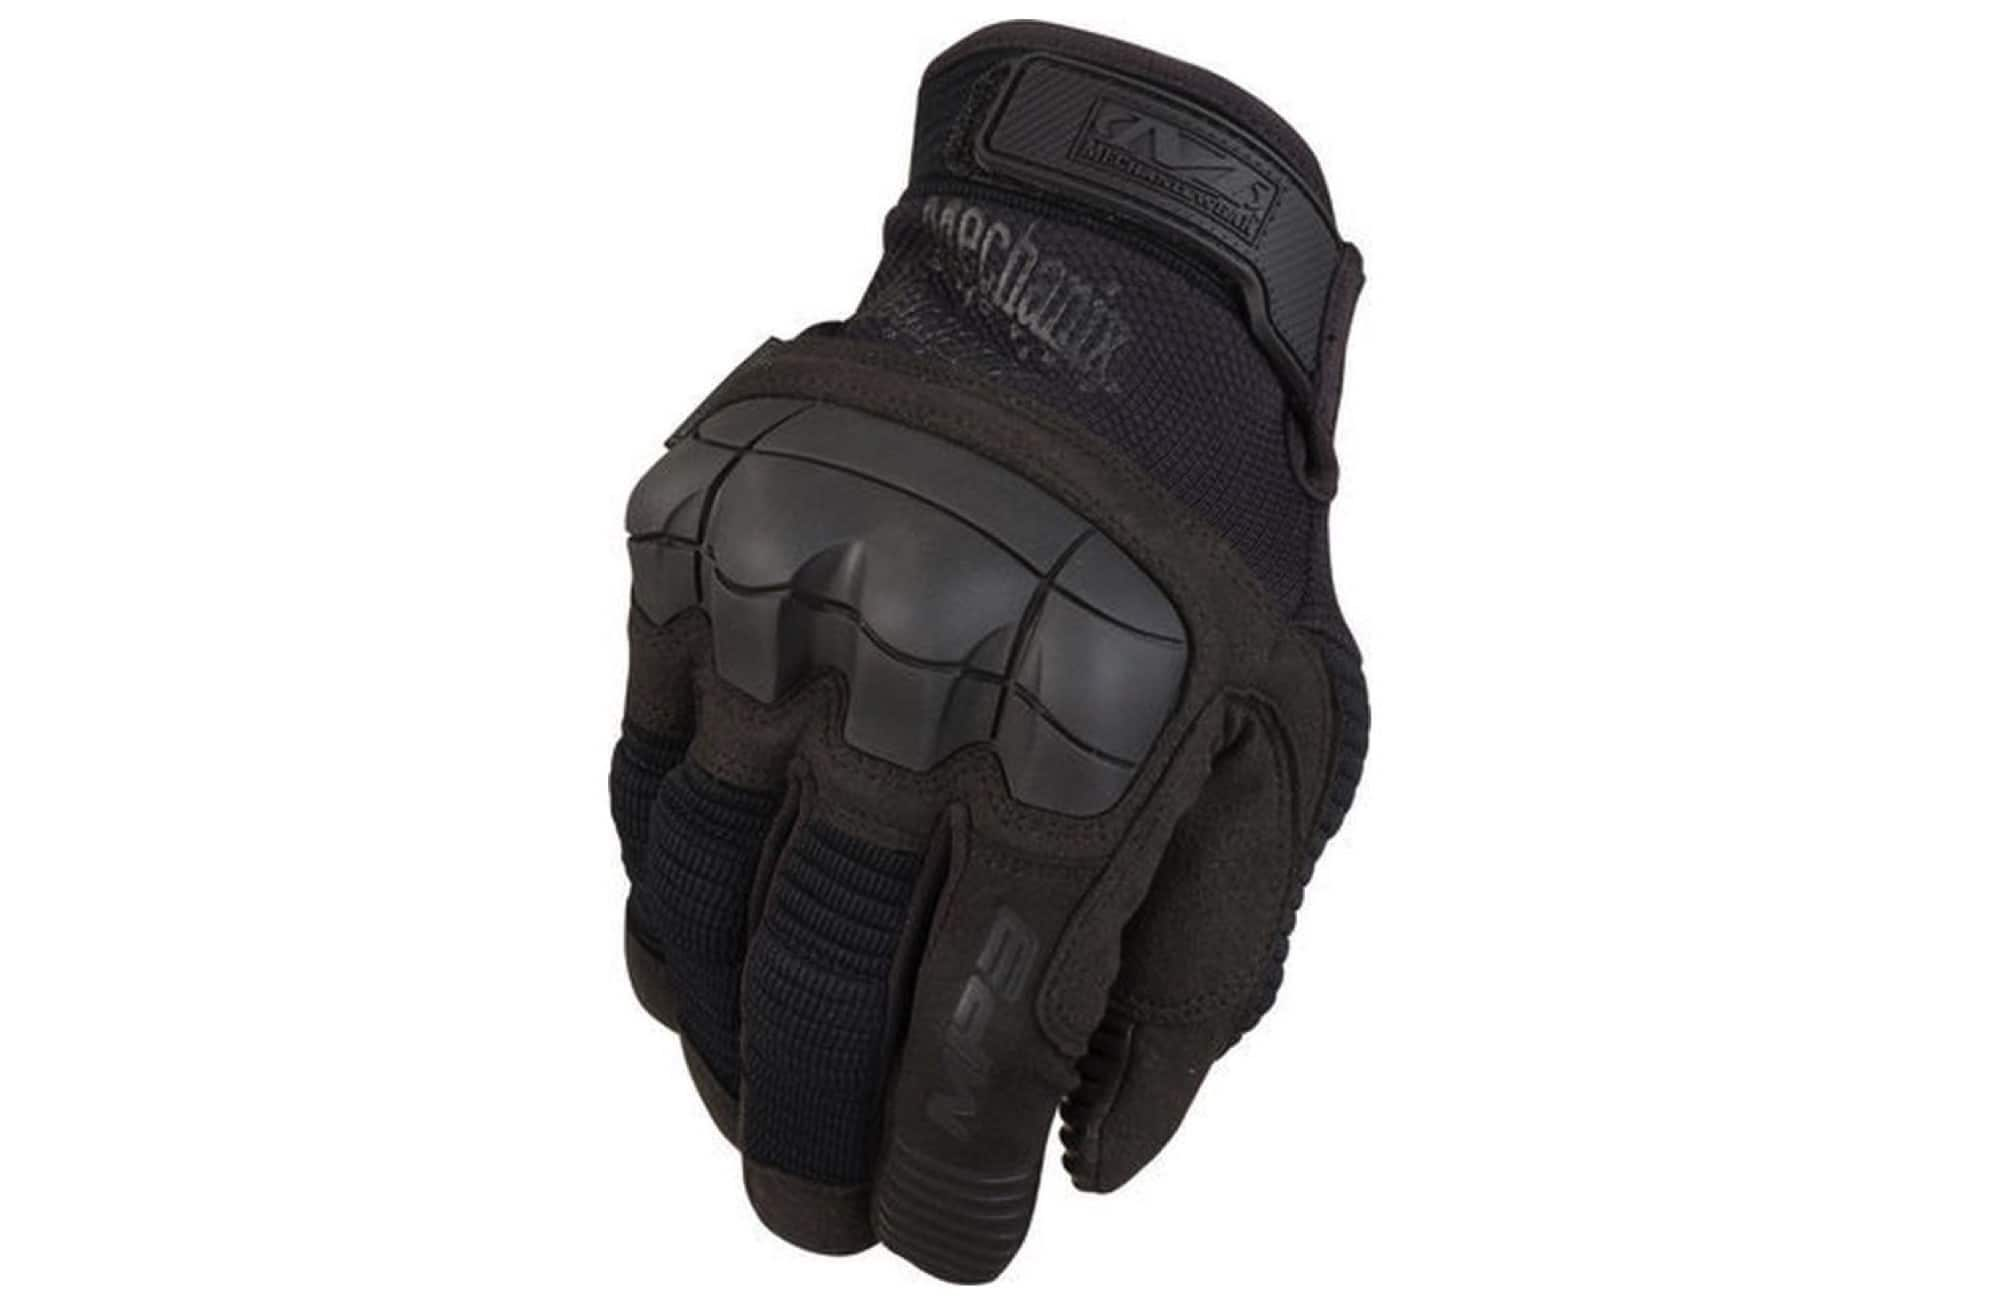 Mechanix-M Pact 3 Covert